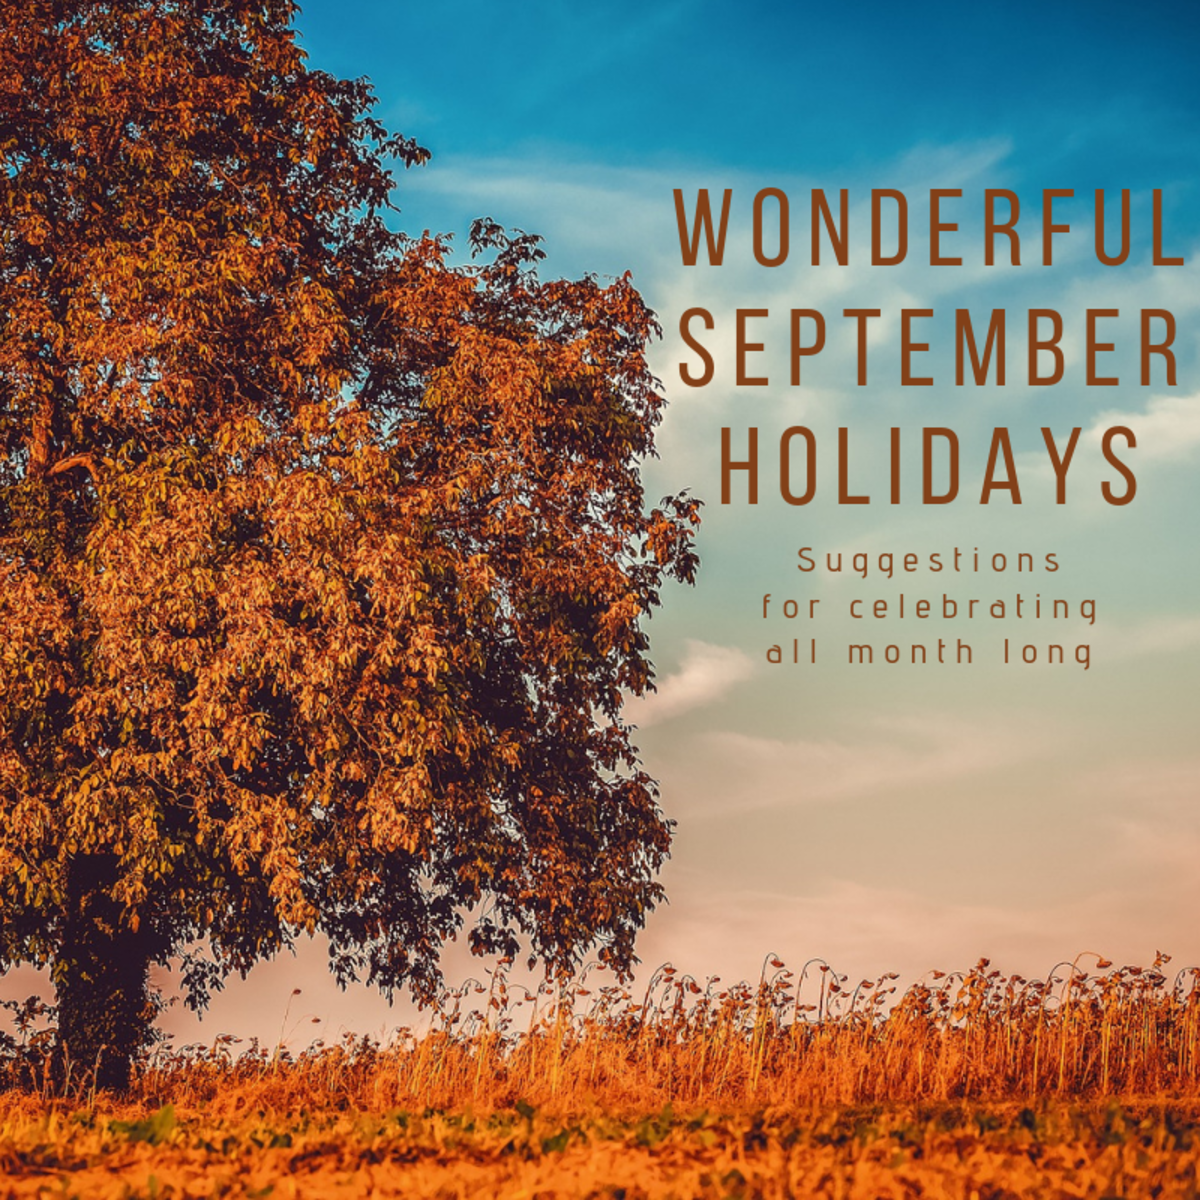 Check out this list of fun holidays worth celebrating throughout the month of September.